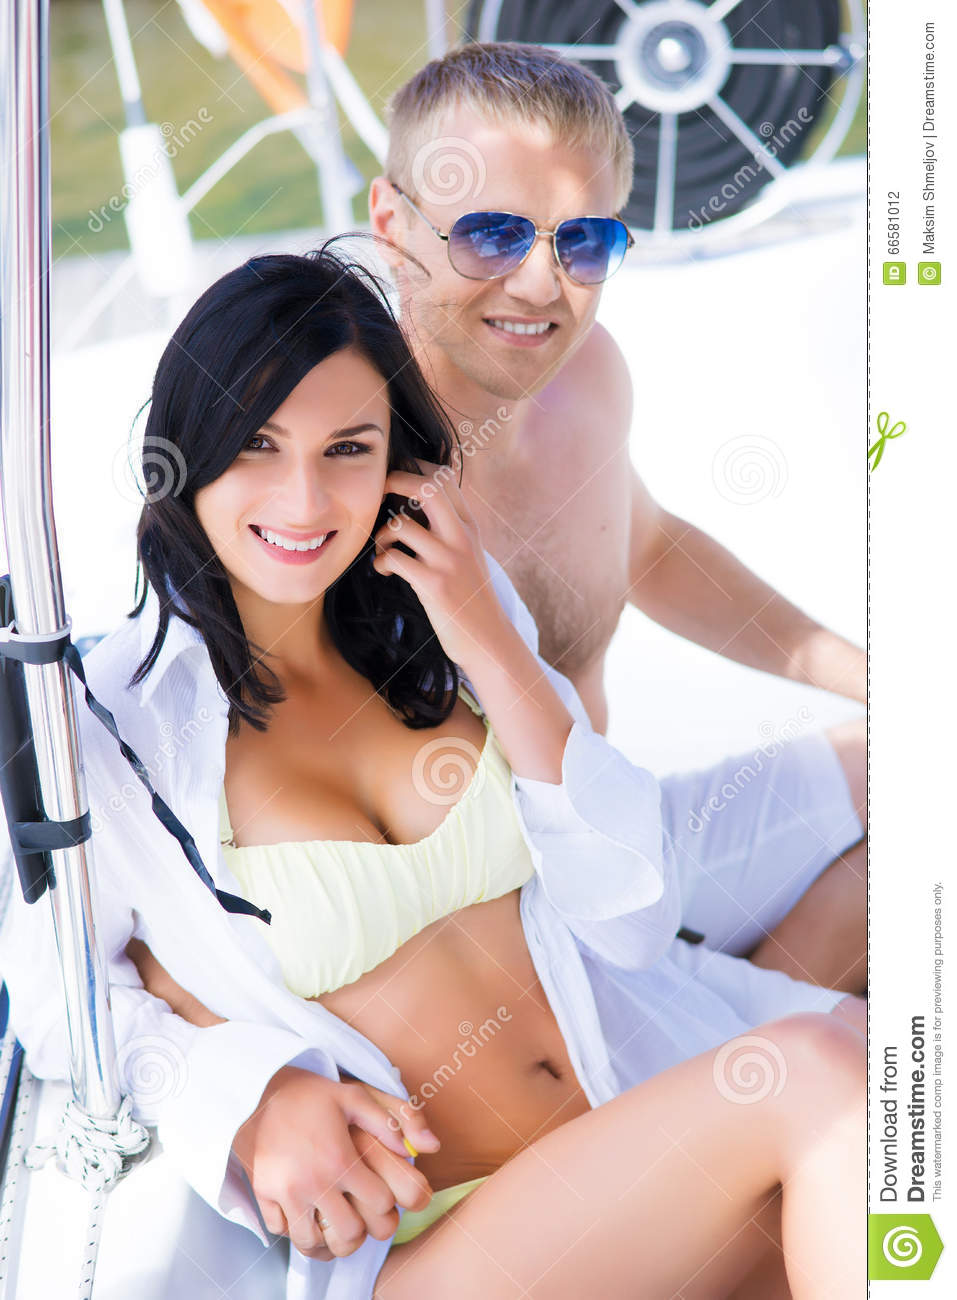 228fe85408 Handsome And Rich Man And A Beautiful And Woman In A Swimsuit Stock ...